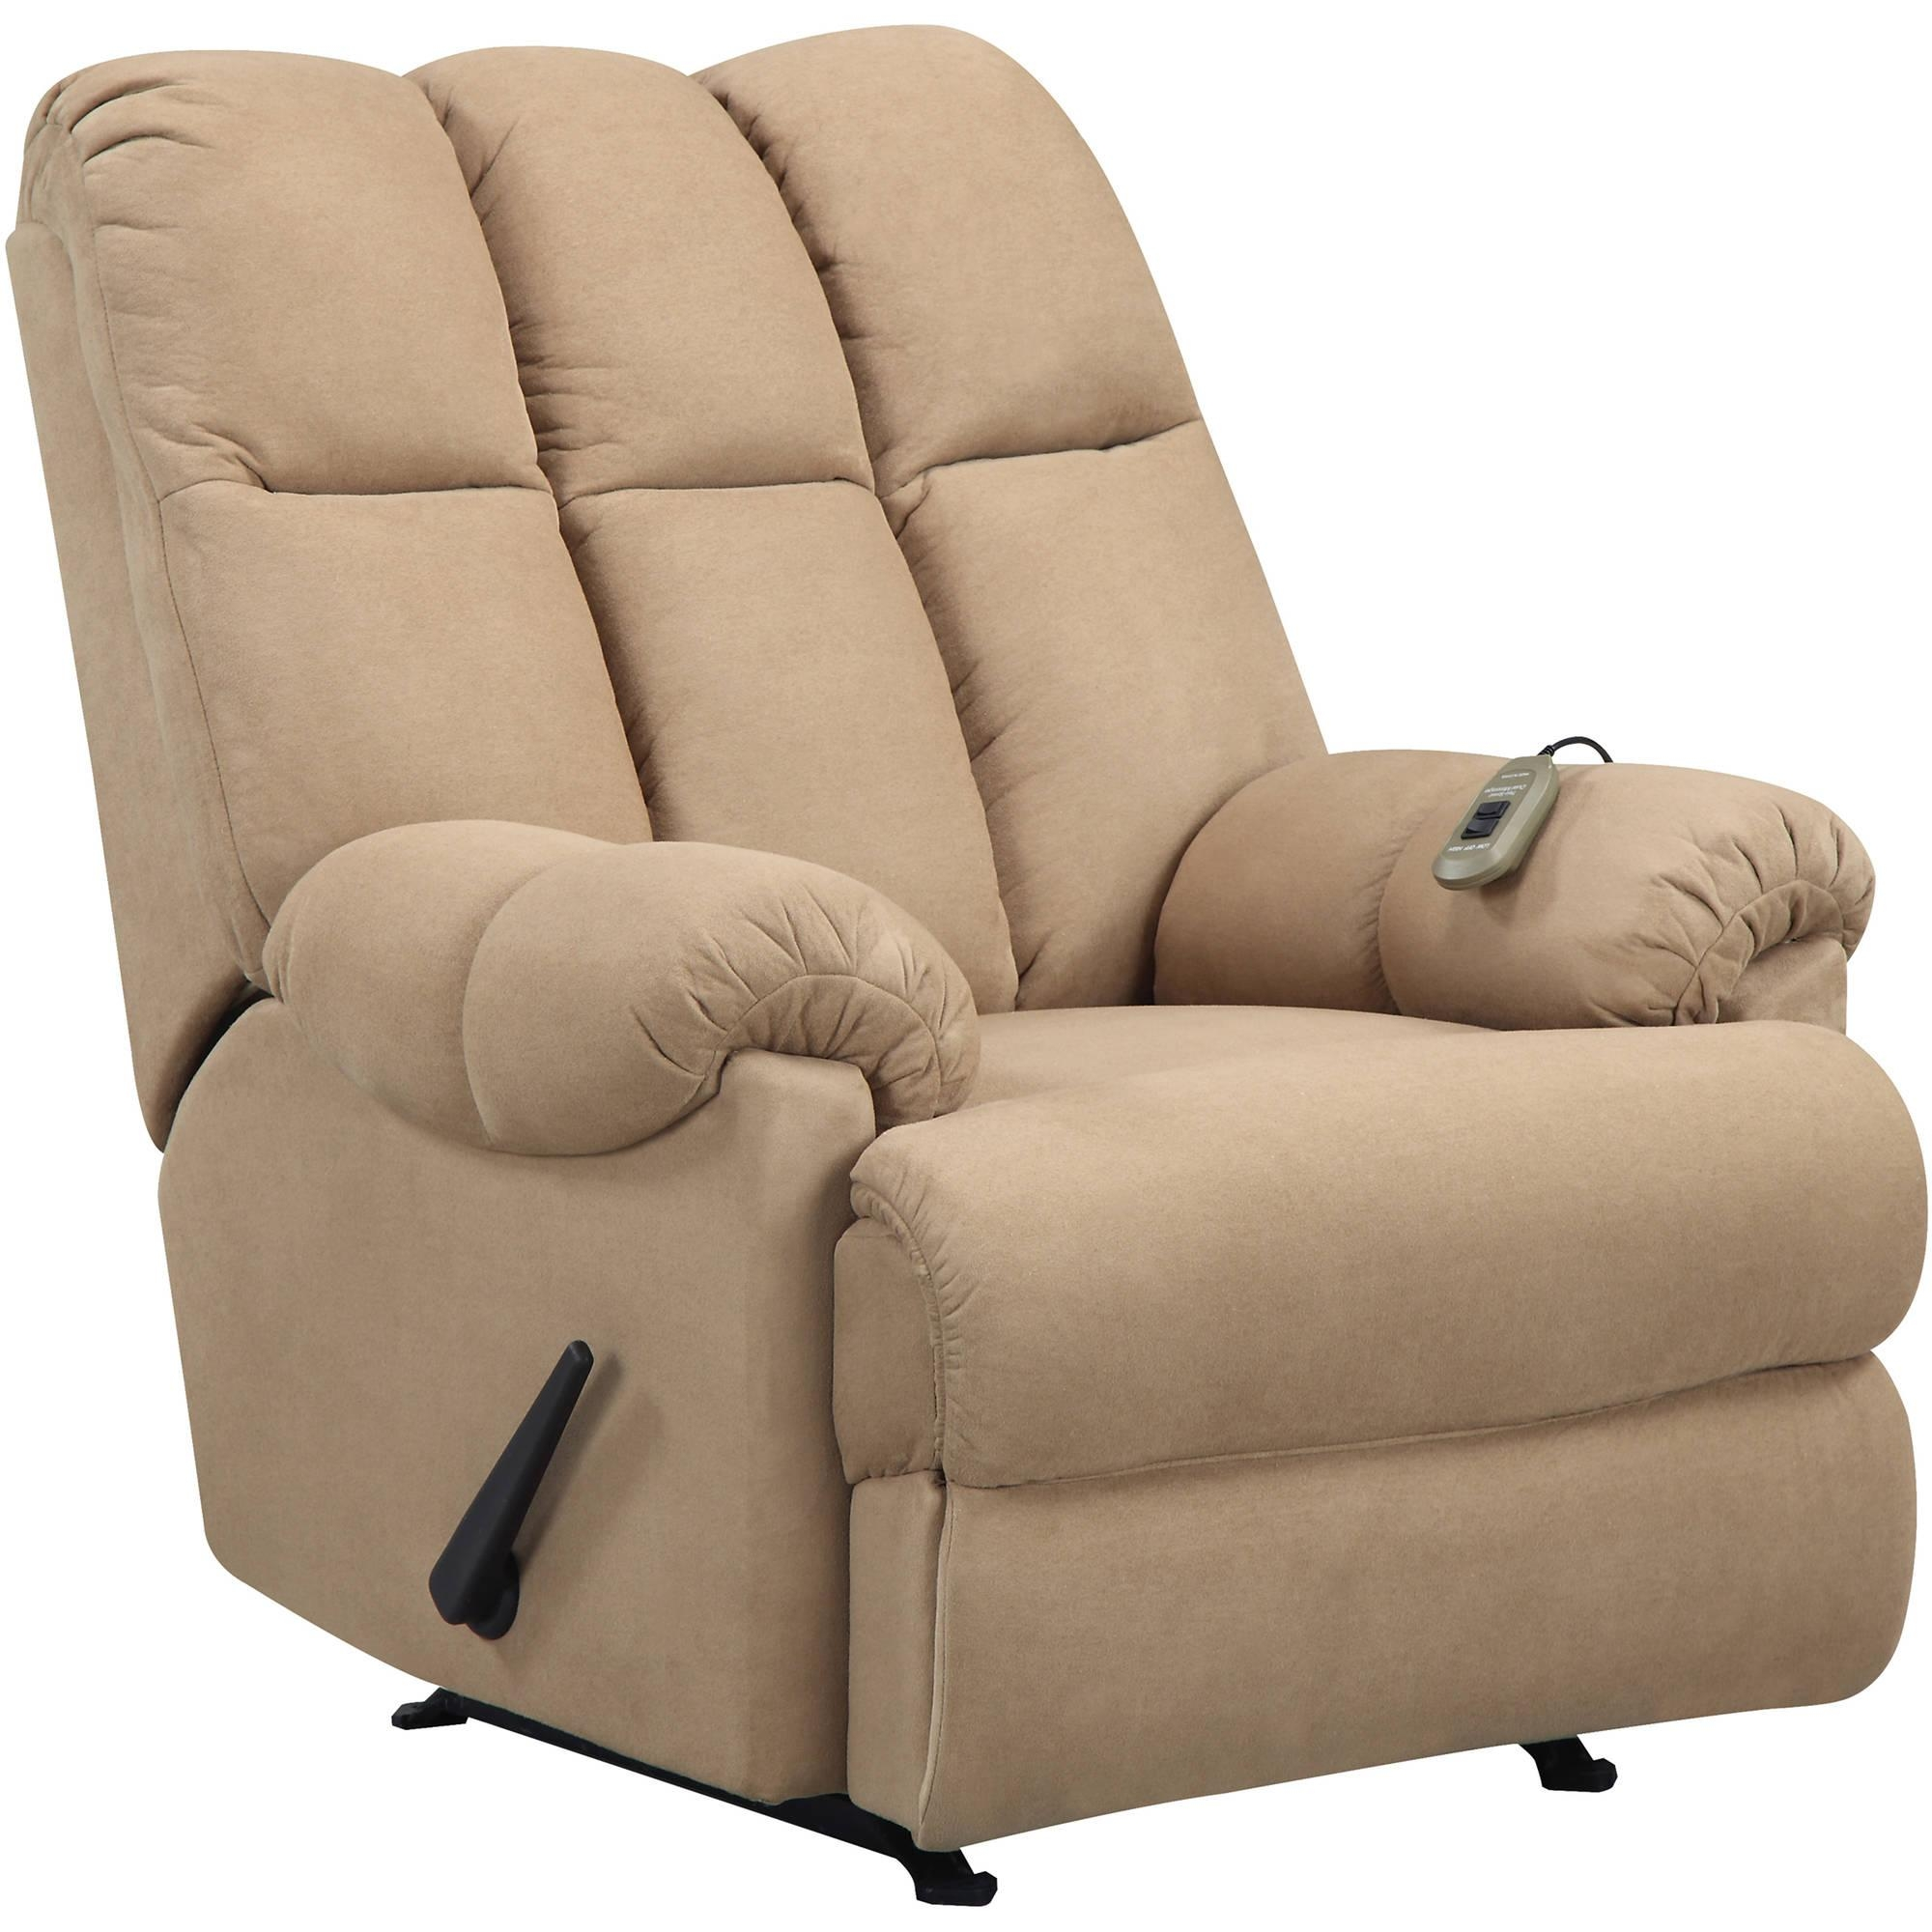 lazy boy microfiber sofa inflatable outdoor only 27 20 best chair recliner ideas